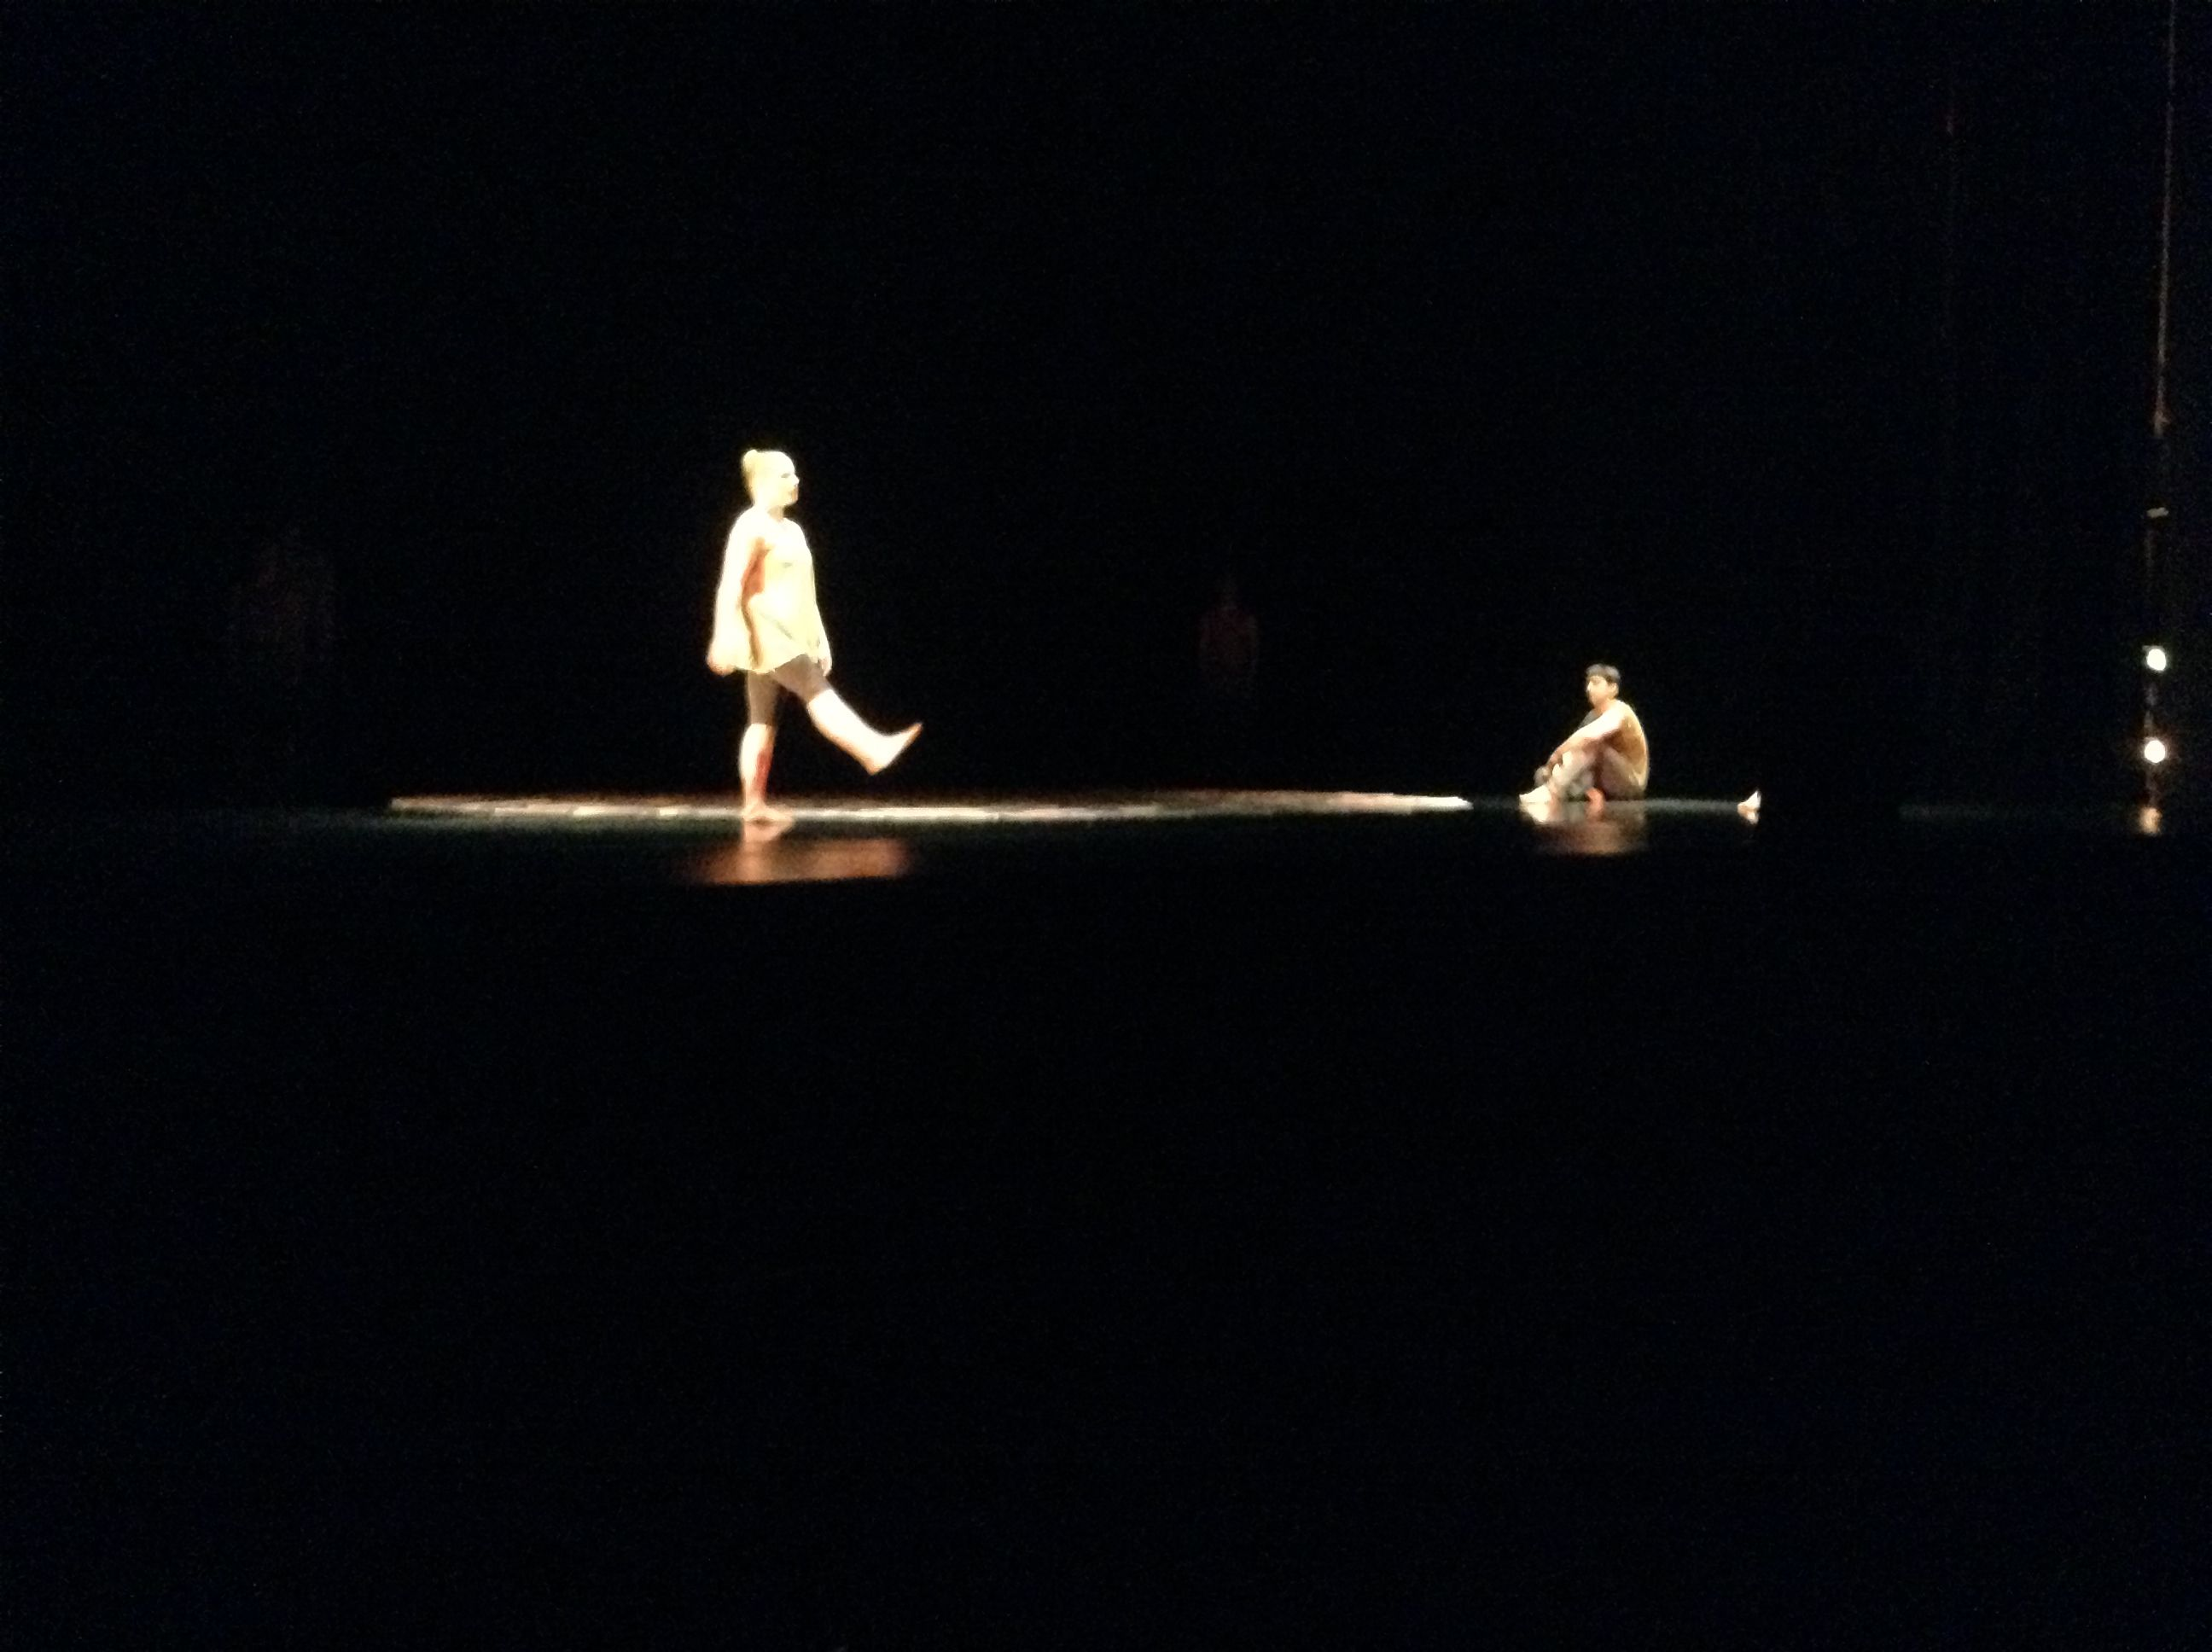 Jeremy's Lighting design for William's piece really inspired me on how to light my dancer.